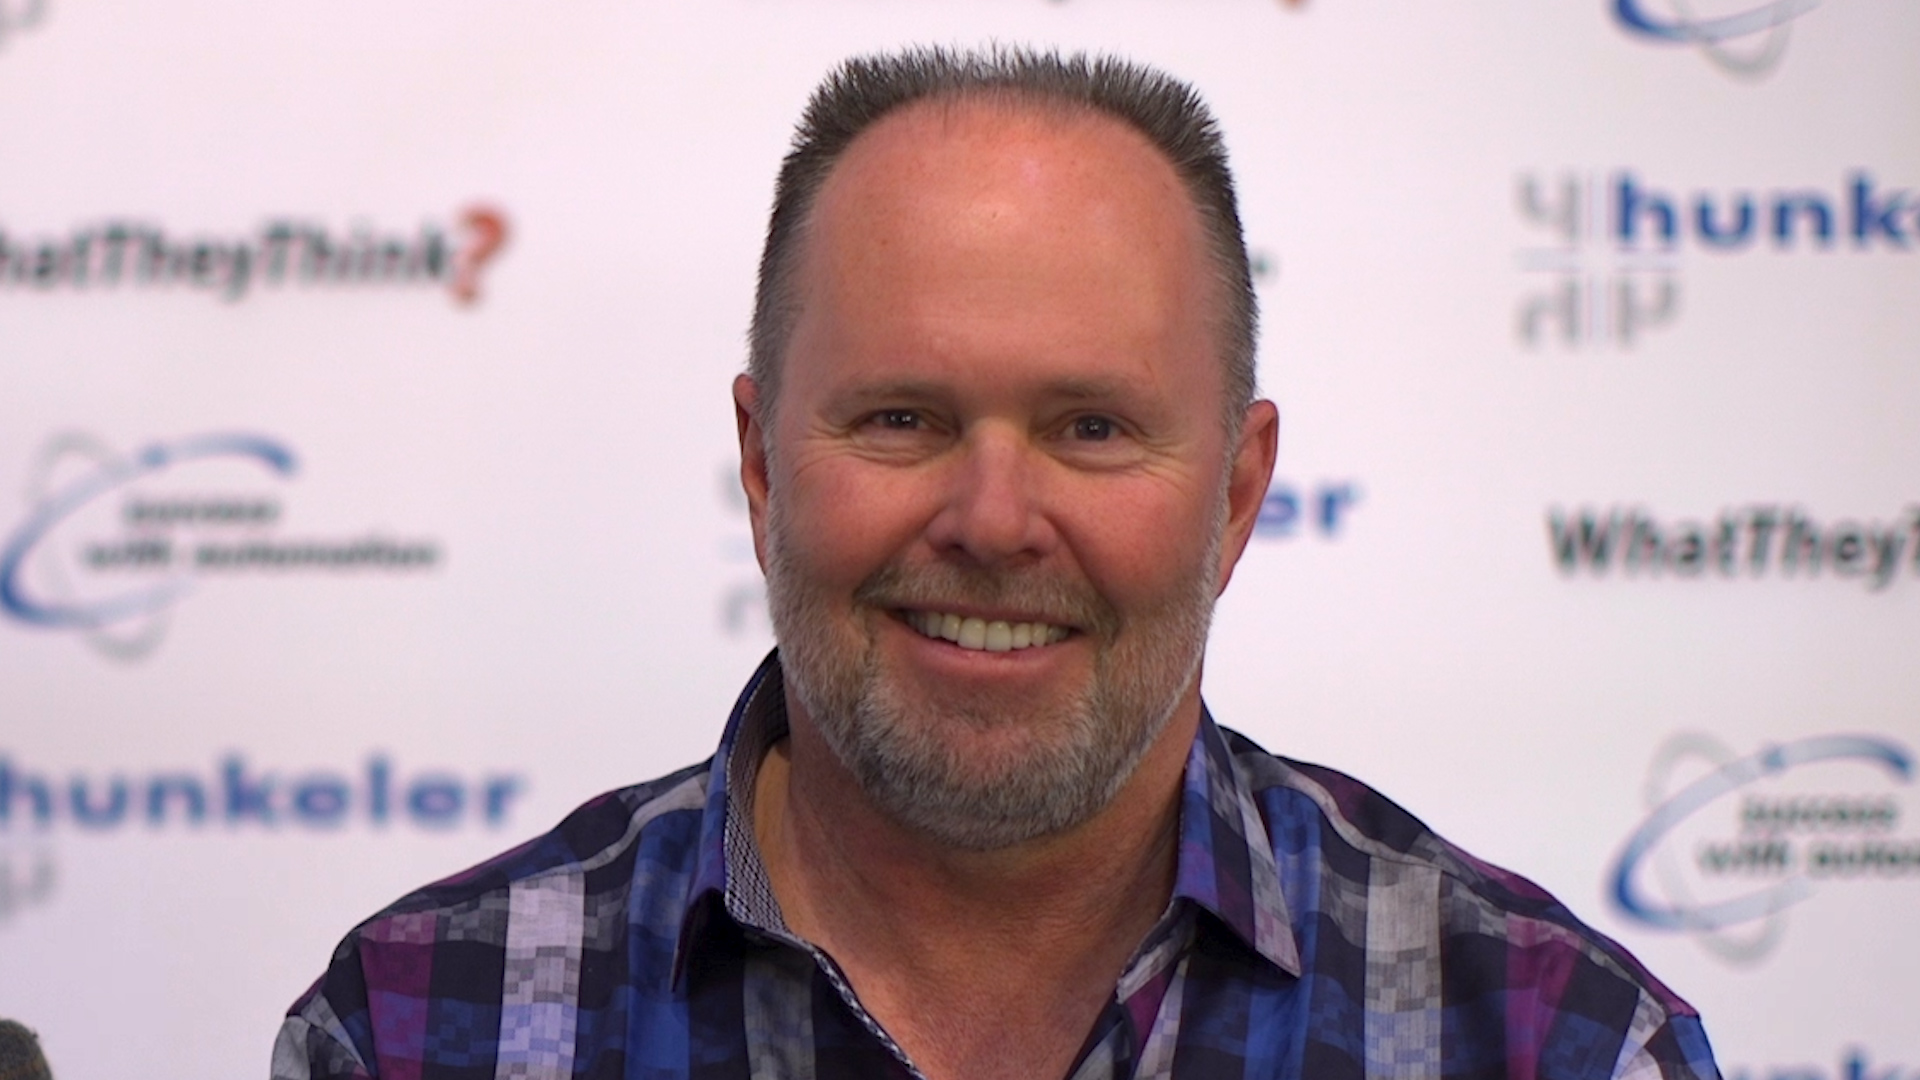 Video preview: For IWCO Direct, Direct Mail is a Mix of Offset and Digital